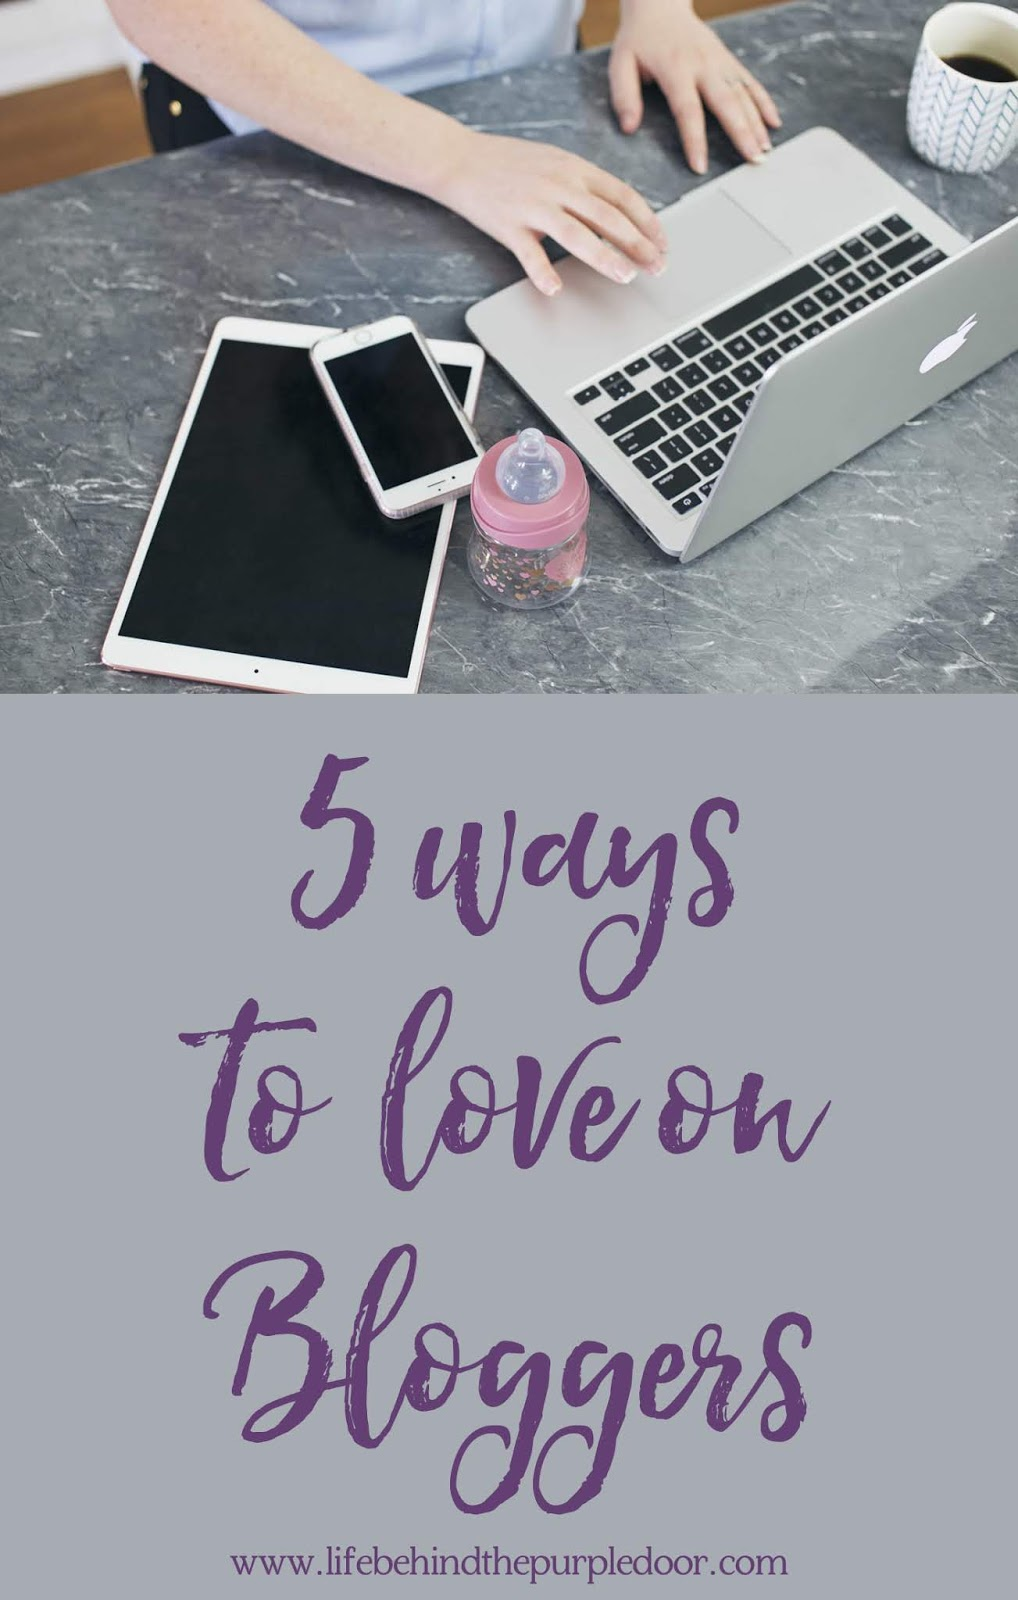 Posts can take anywhere from 30 minutes to two hours to write (but those 3000 word missives take even longer) sourcing images and turning them into ... & 5 ways to support your favourite blogger | Life Behind The Purple Door